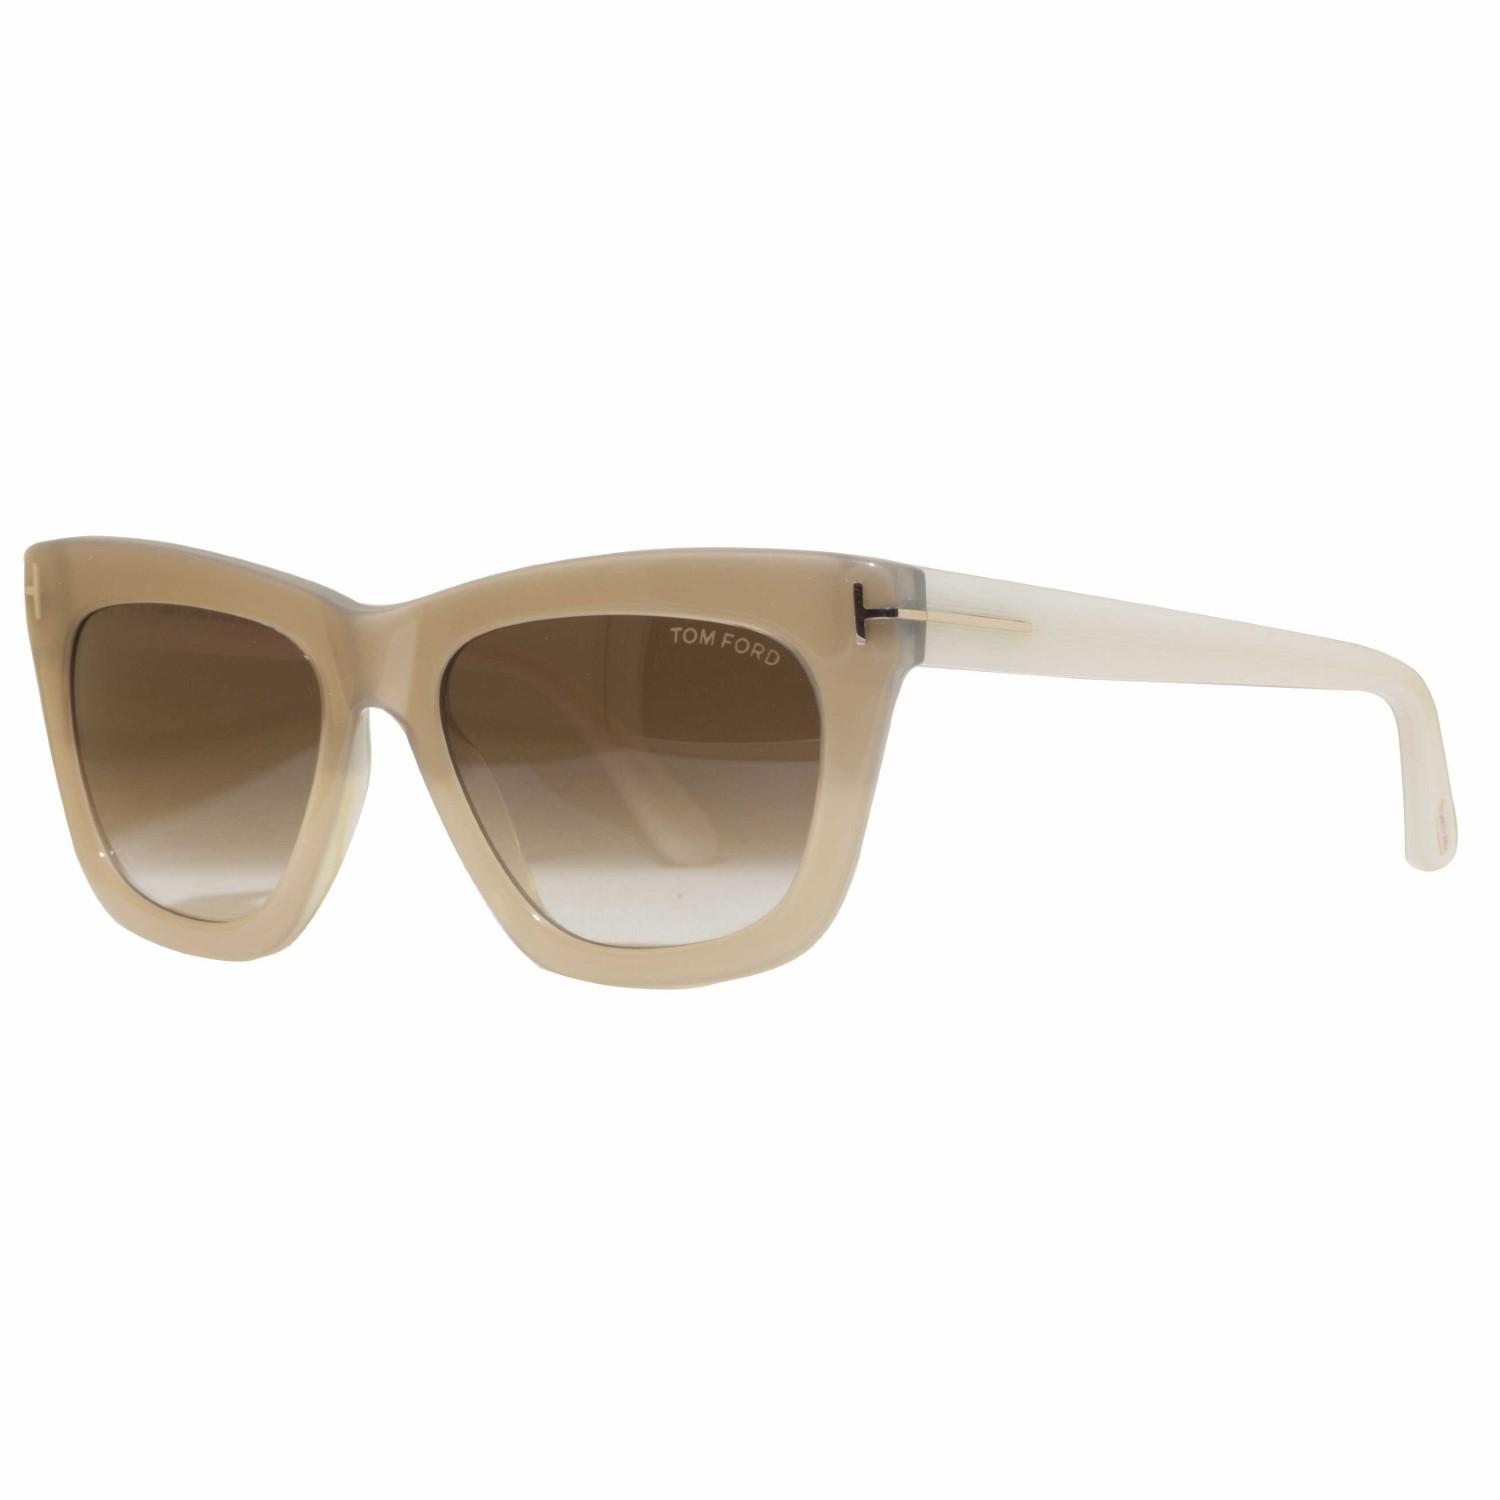 d055bfa8c8c46 Lyst - Tom Ford Celina Tf361 34f Pearl ivory Brown Gradient Square ...